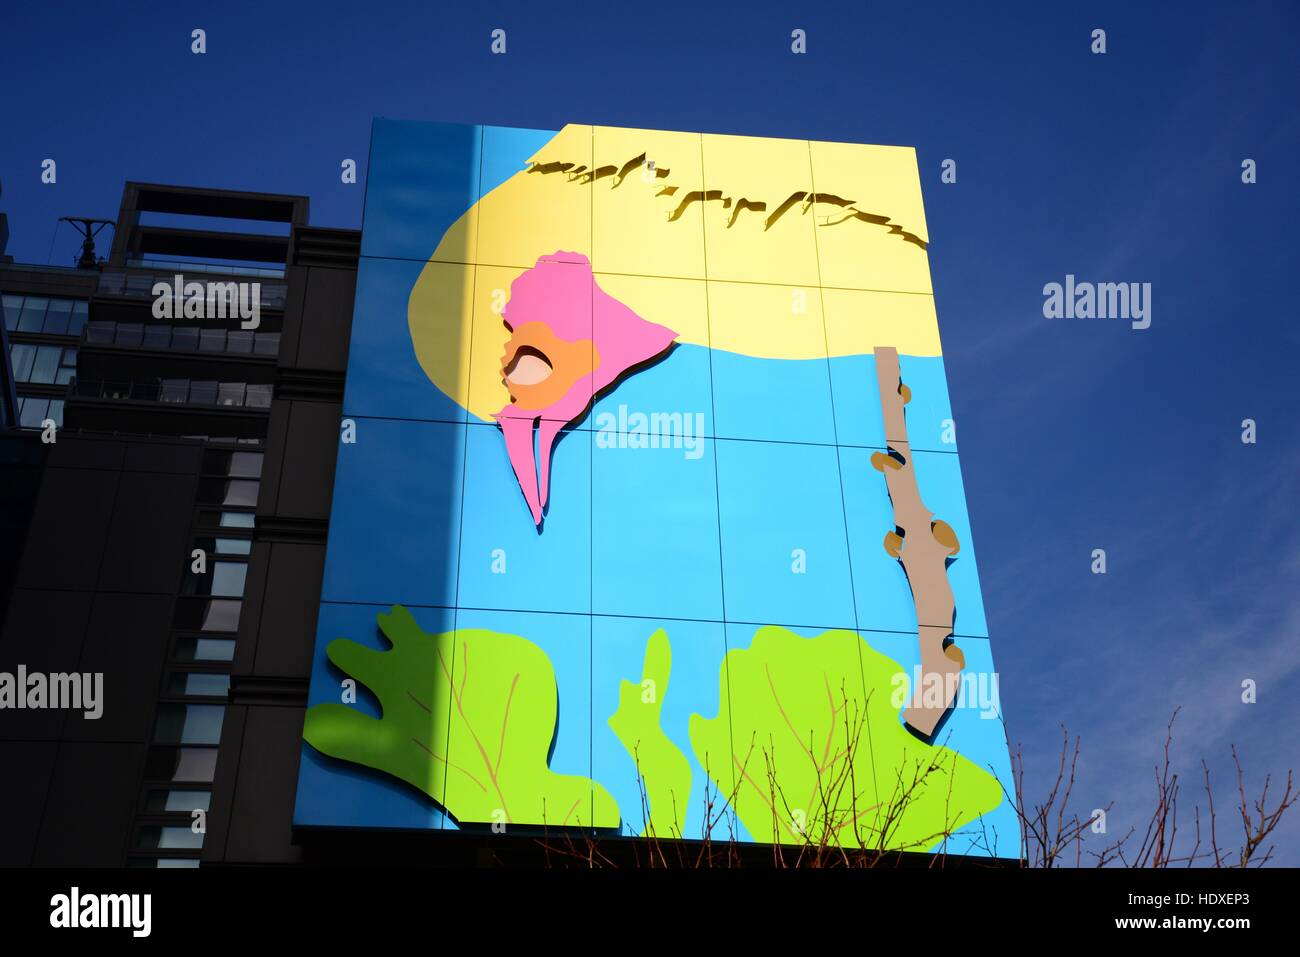 Artwork on a building in Euston, London - Stock Image